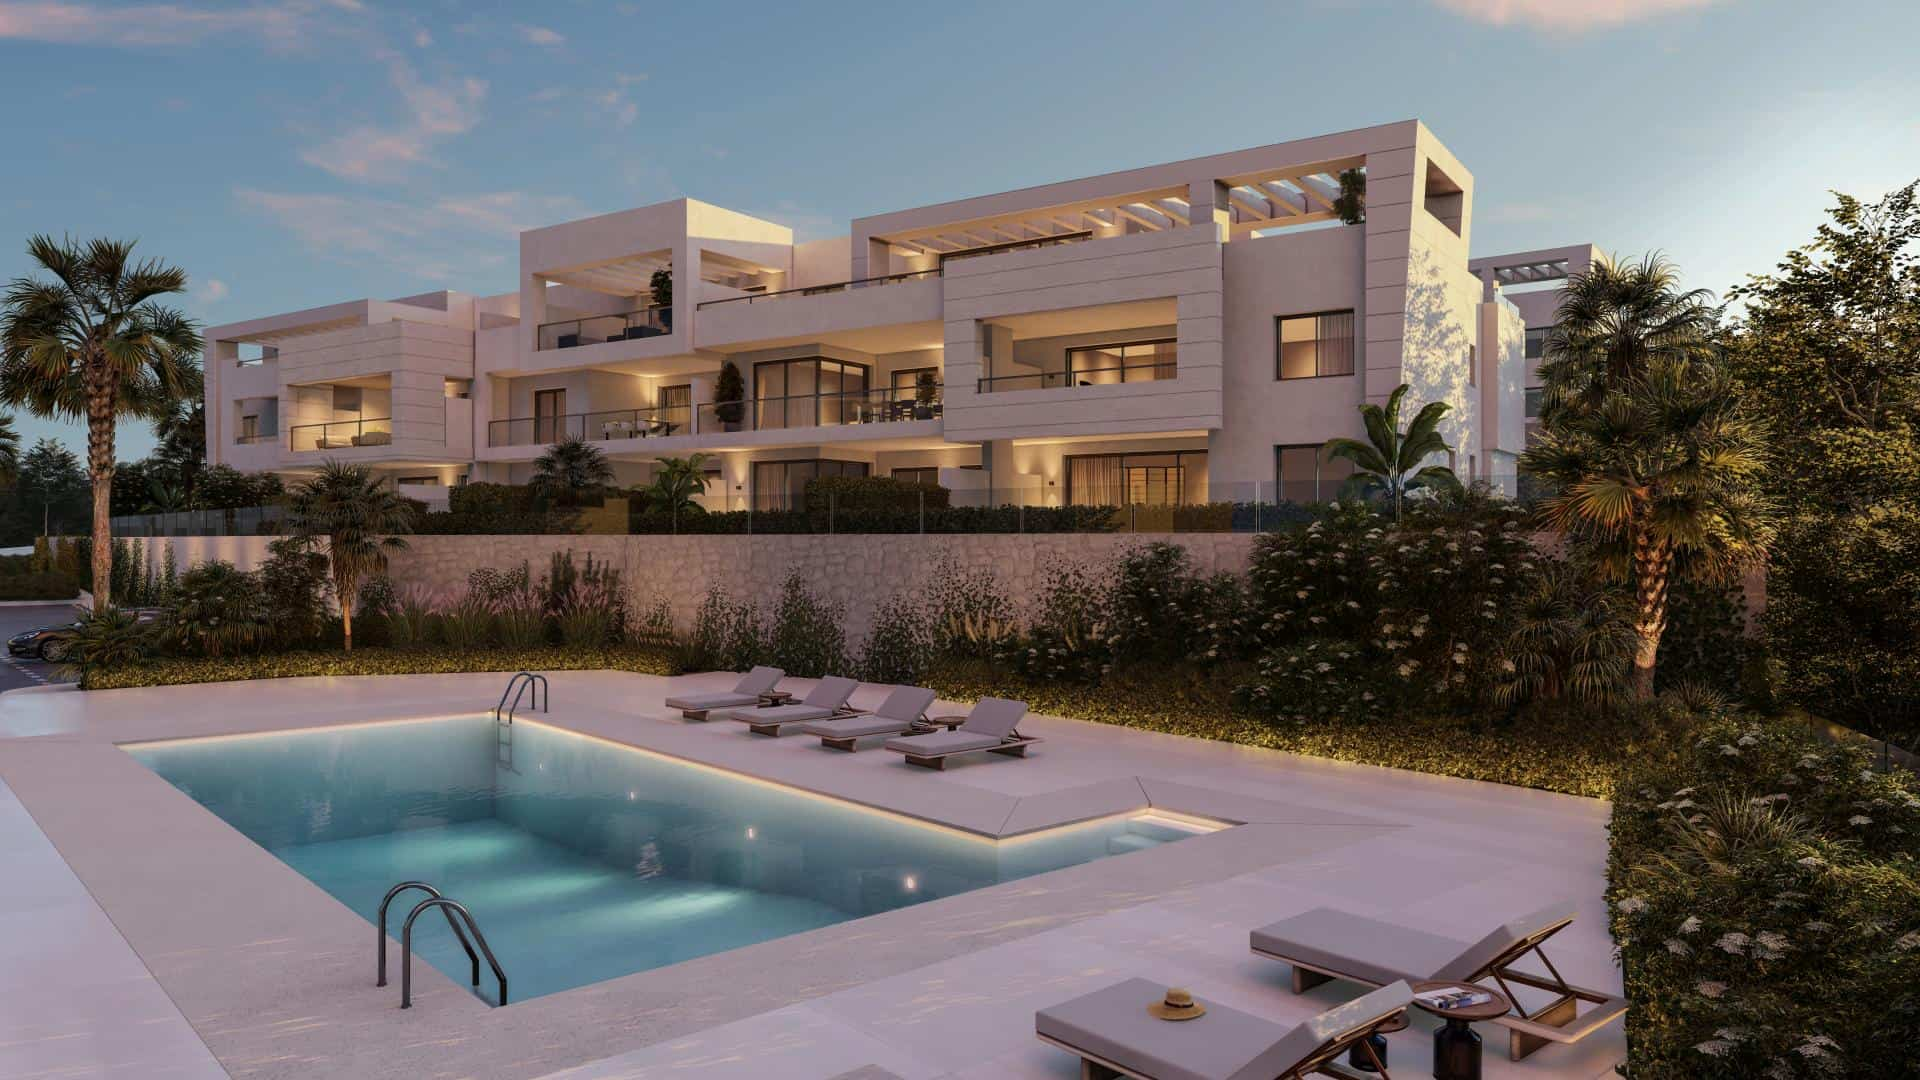 Nieuwbouw project in Casares (Spanje, Costa del Sol)